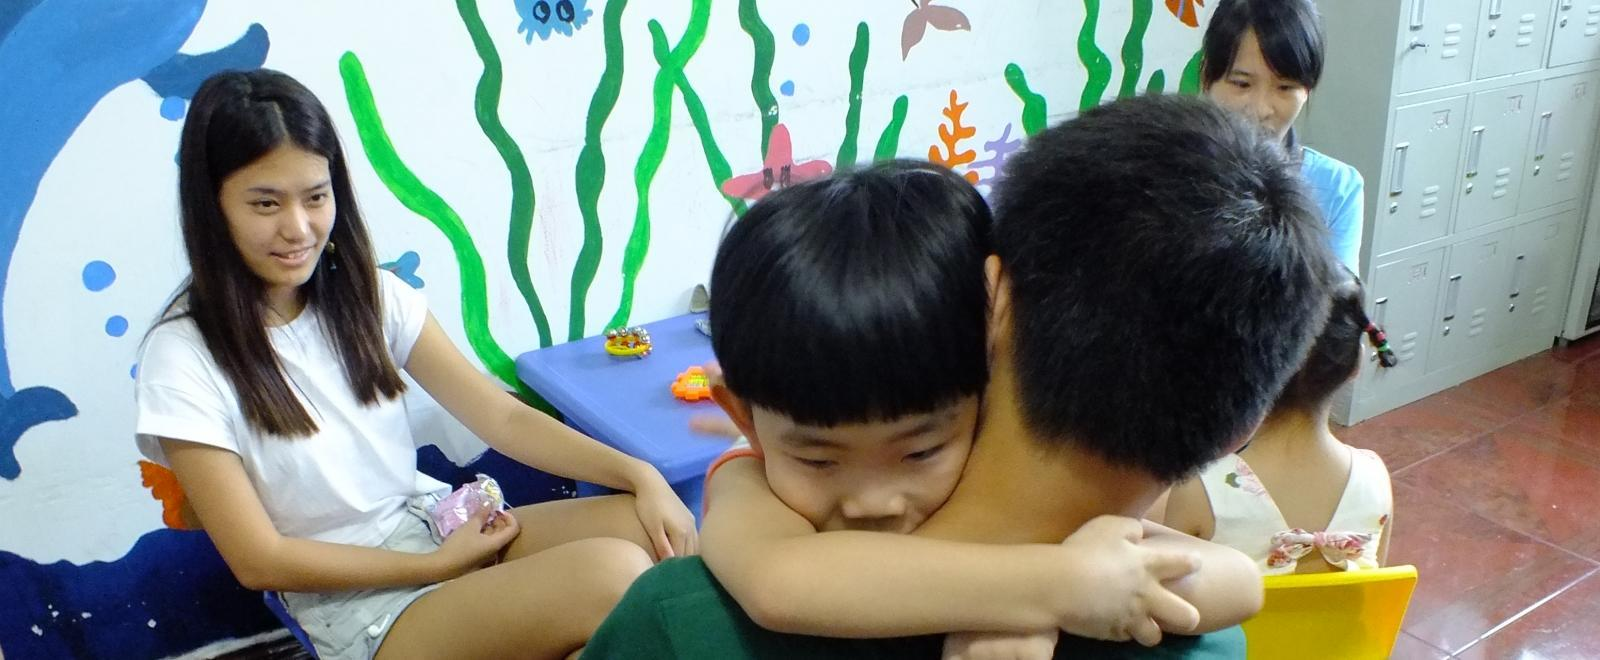 During teenage community volunteer work in China, a high school student hugs a young child in the classroom.